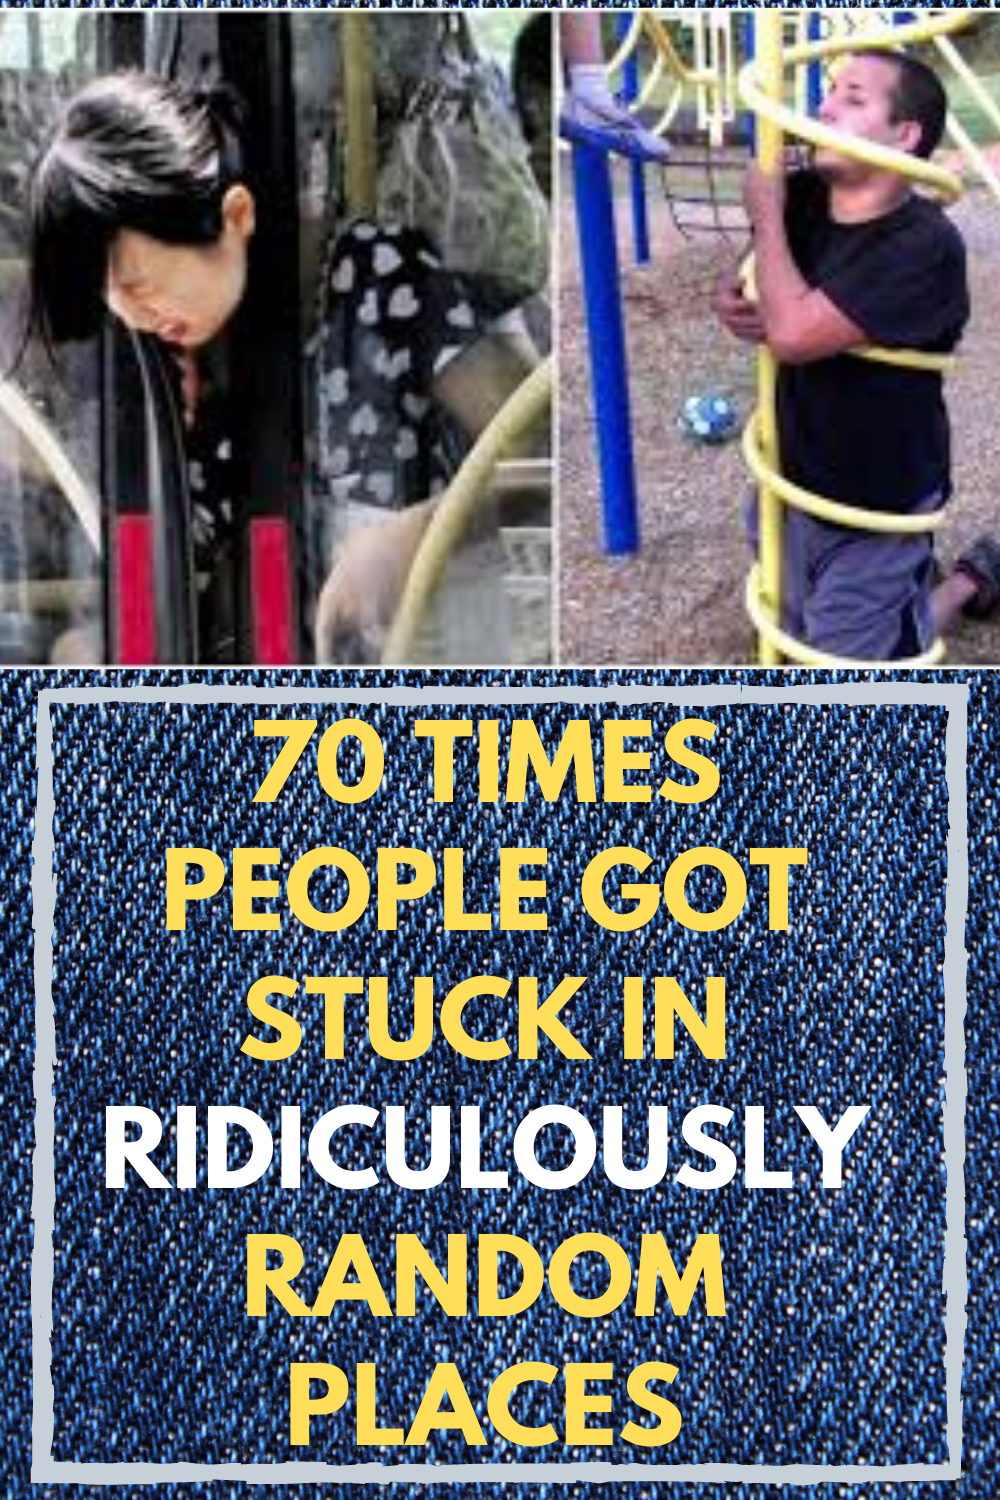 70 Times people got stuck in ridiculously random places